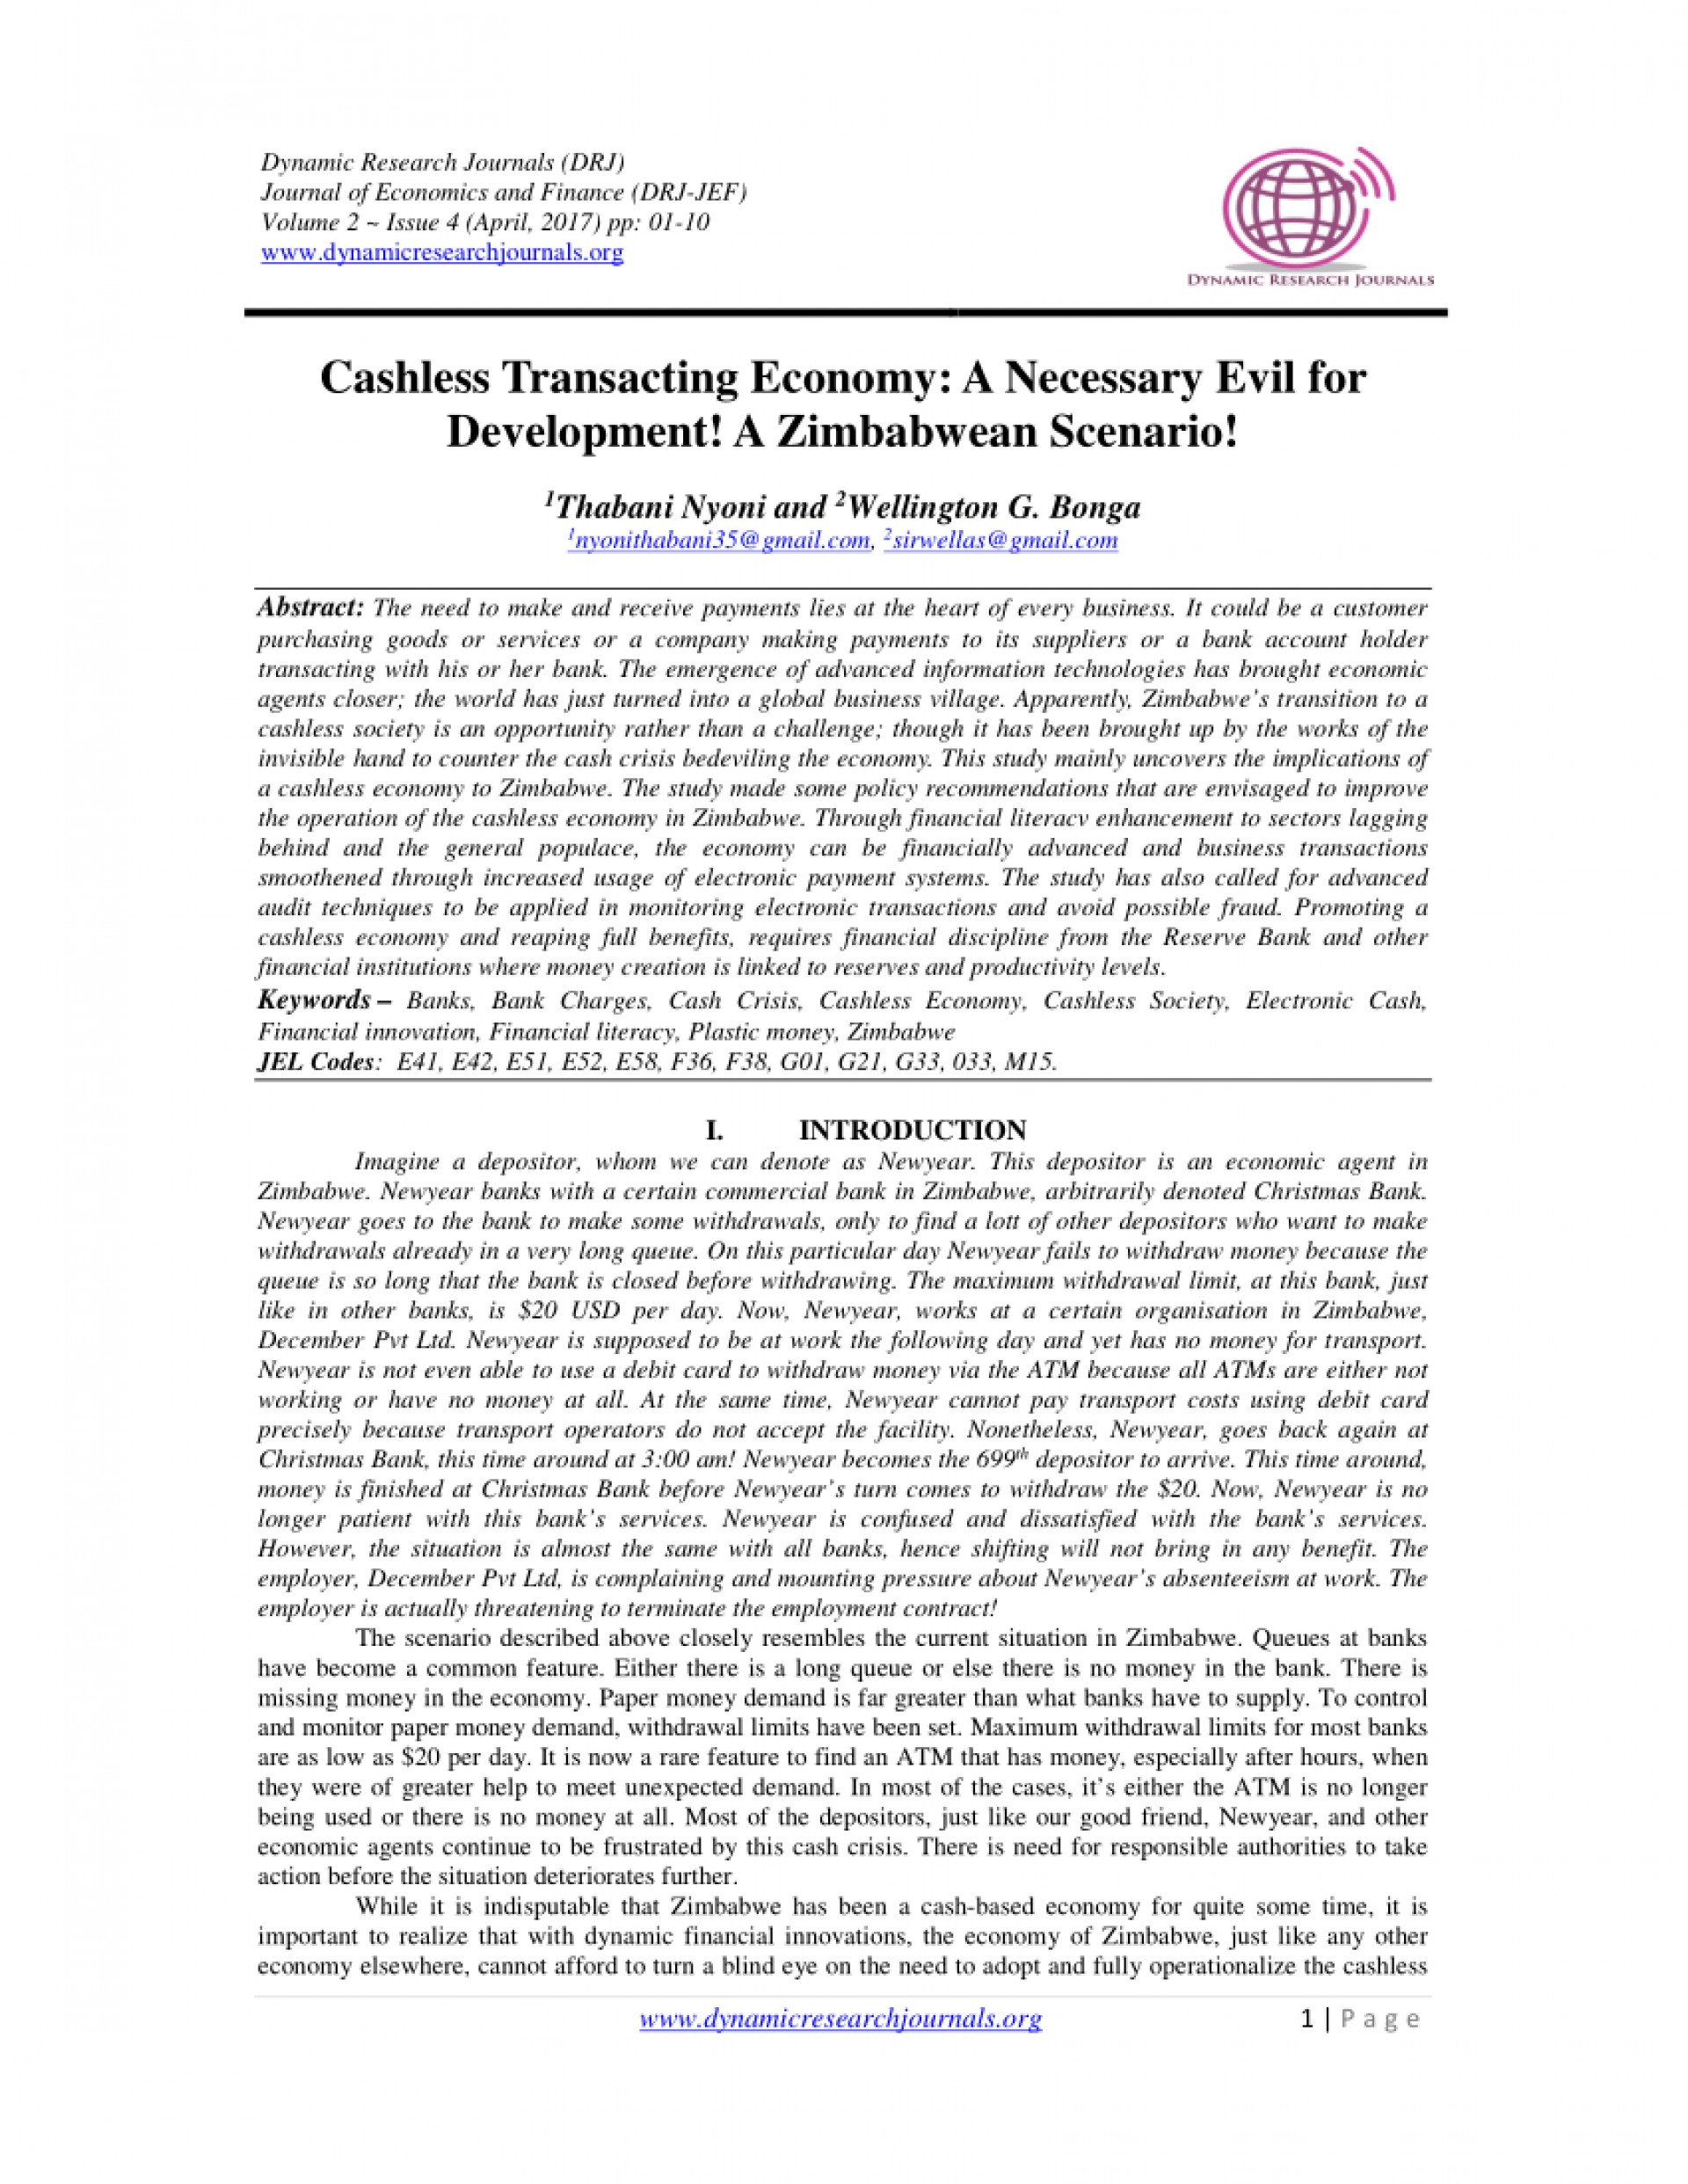 003 Largepreview Cash To Cashless Economy Research Rare Paper 1920